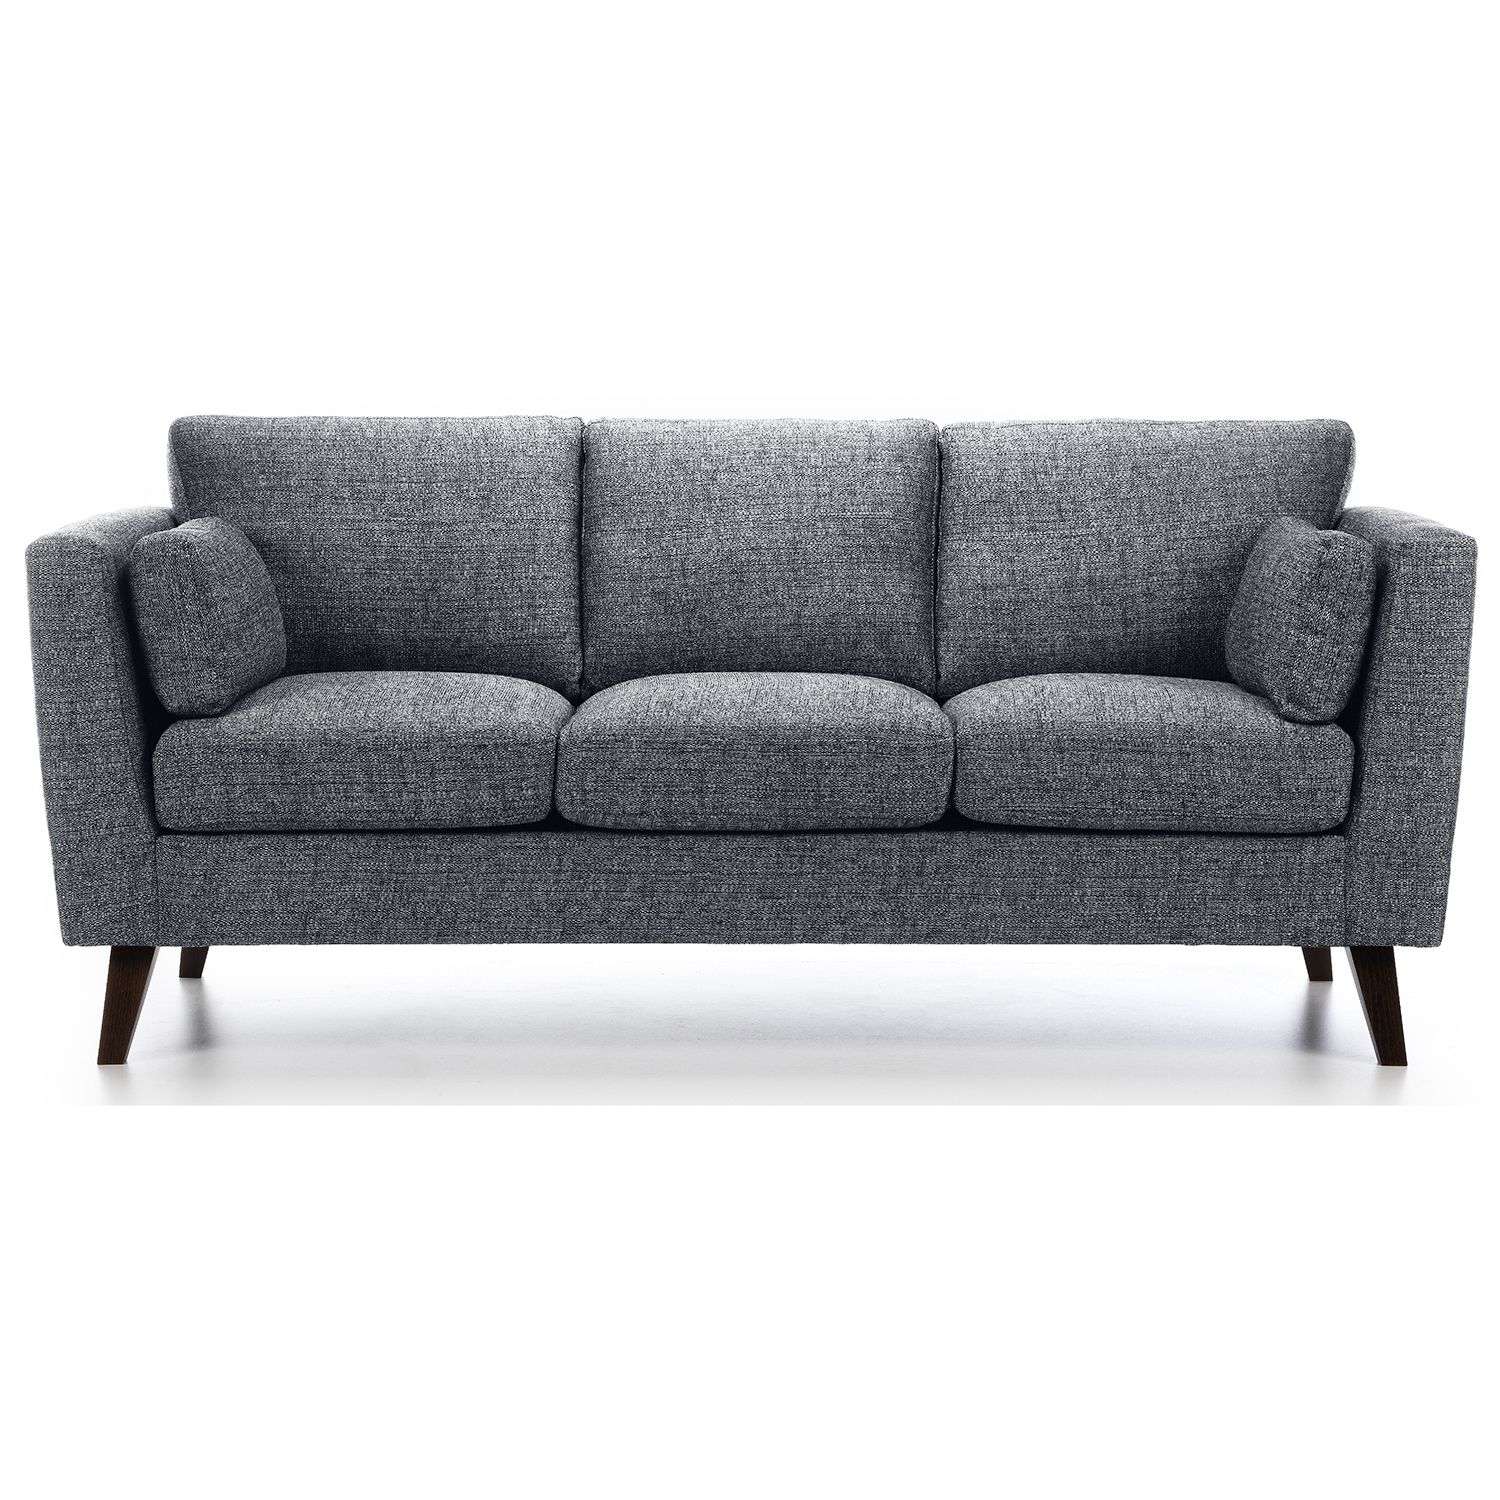 Sam Fabric 3 Seater Sofa Next Day Delivery Sam Fabric 3 Seater